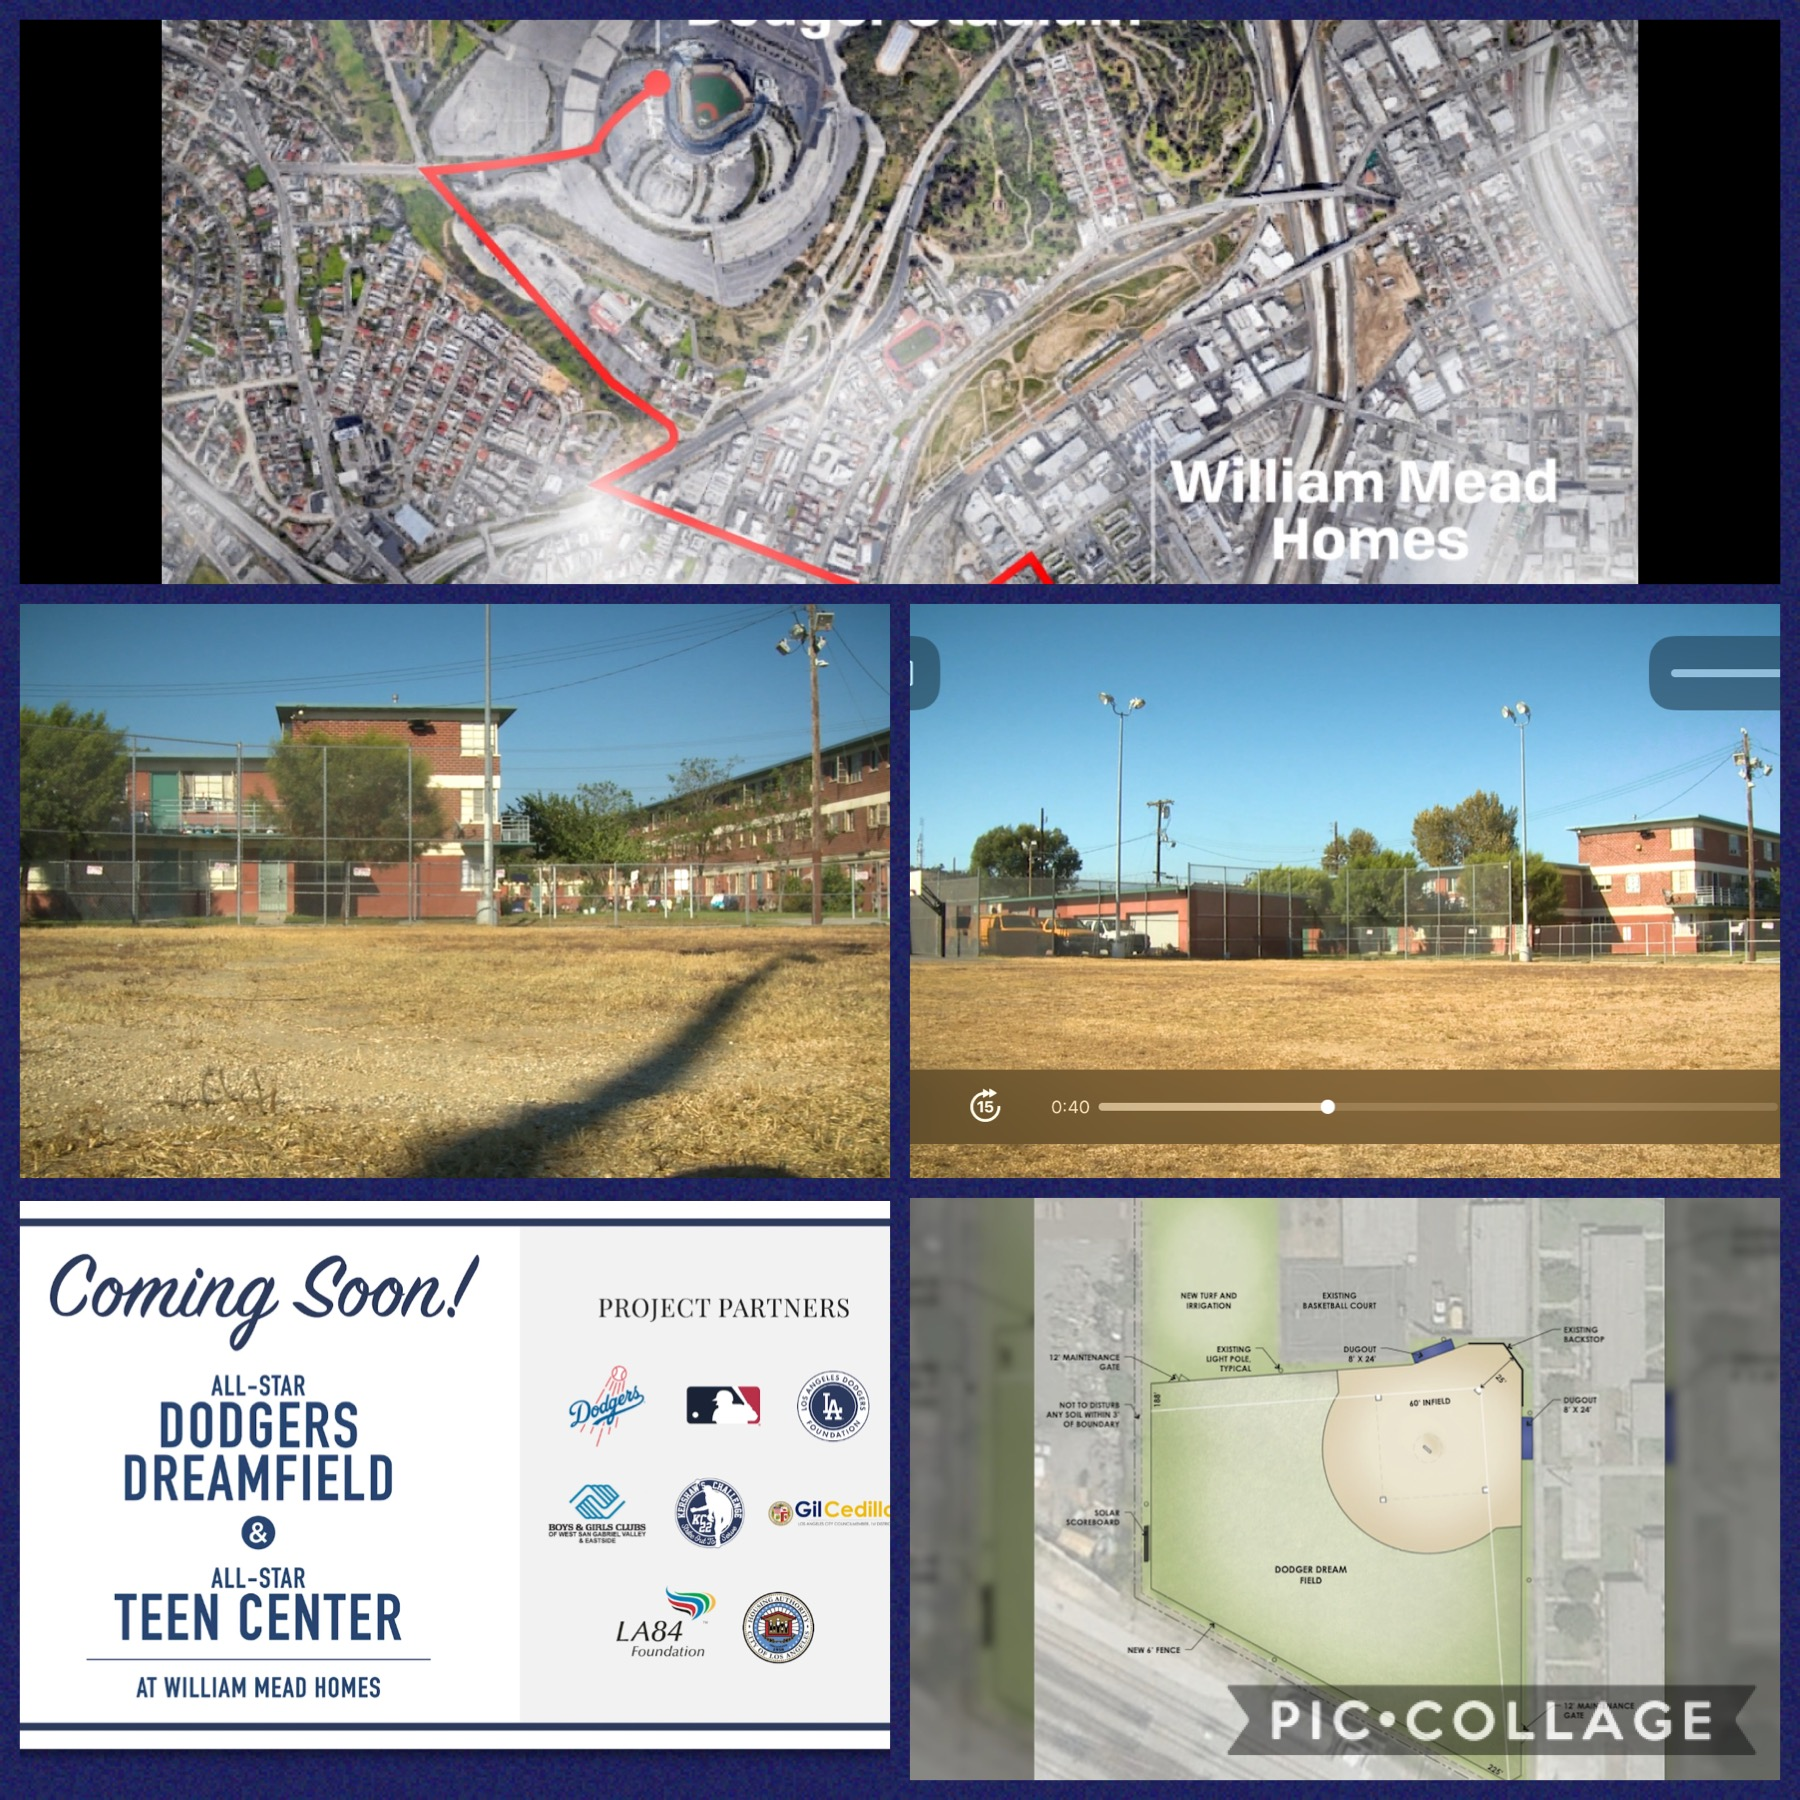 William Mead Homes All-Star Dream Field 9-17-2020 COLLAGE